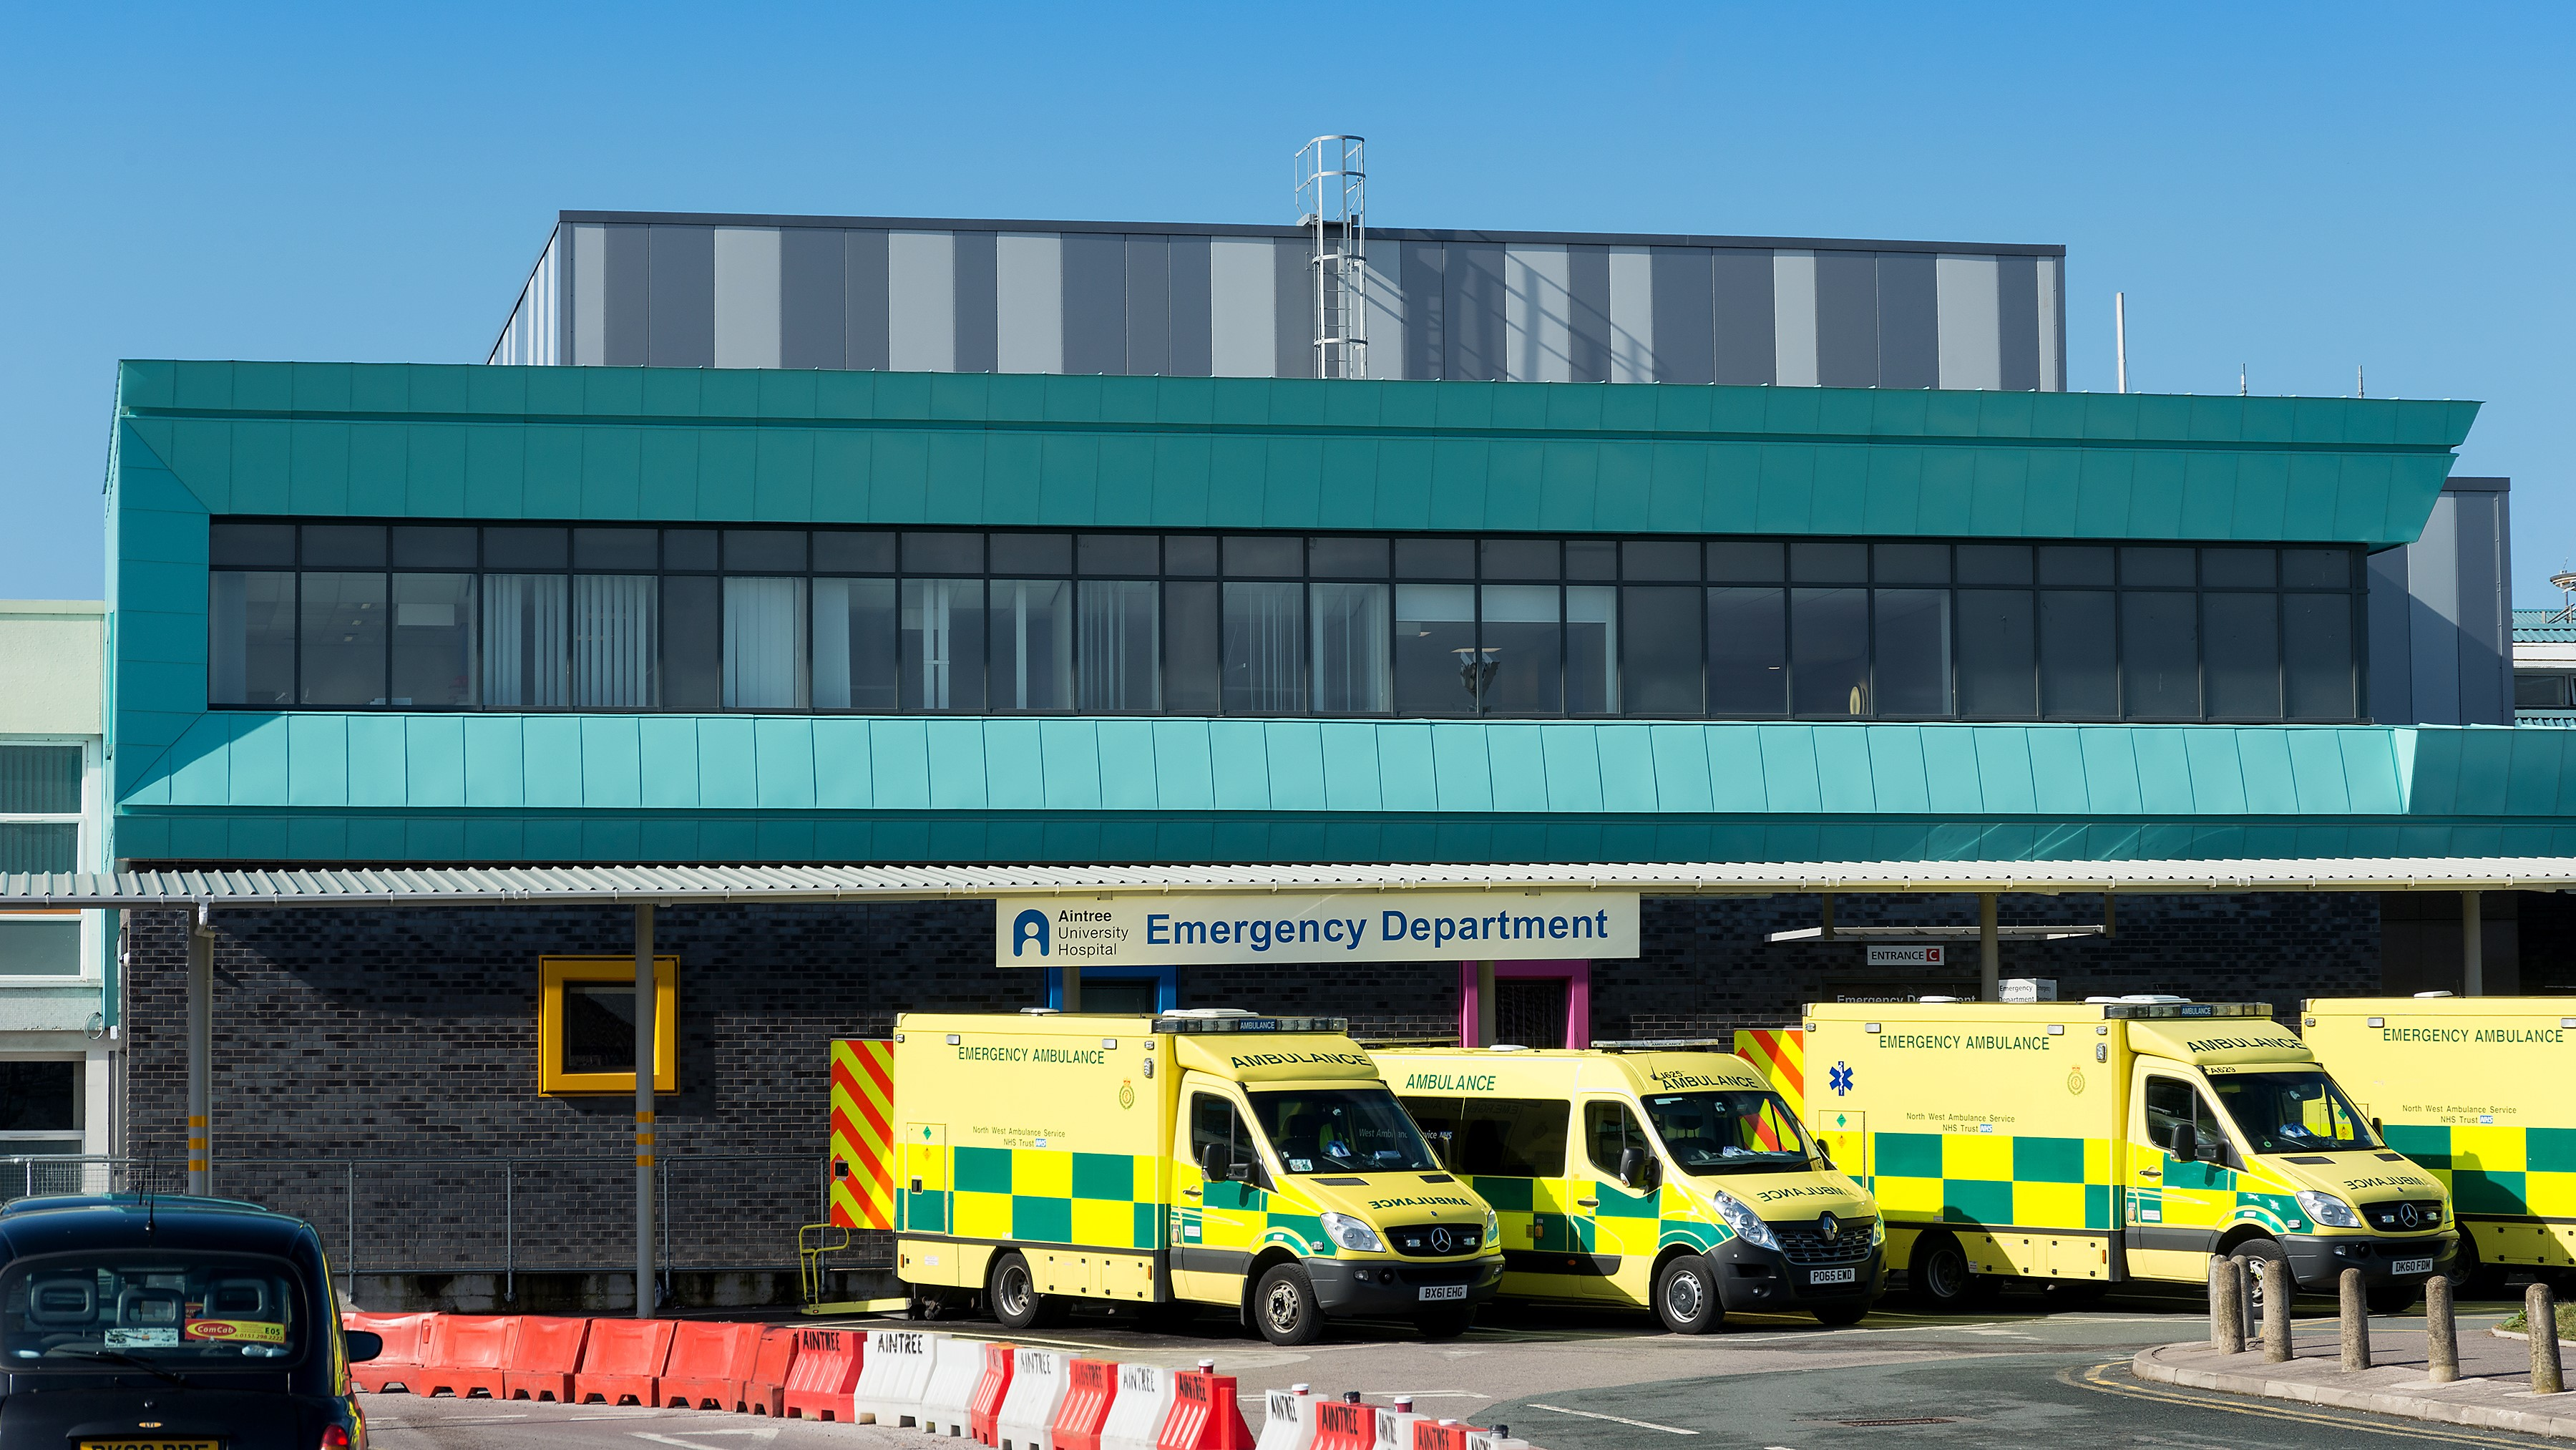 Aintree Hospital Reynolux Roofing Cladding Longworth Aintree Hospital Liverpool Fatra Optimo Traditional Textures (5)